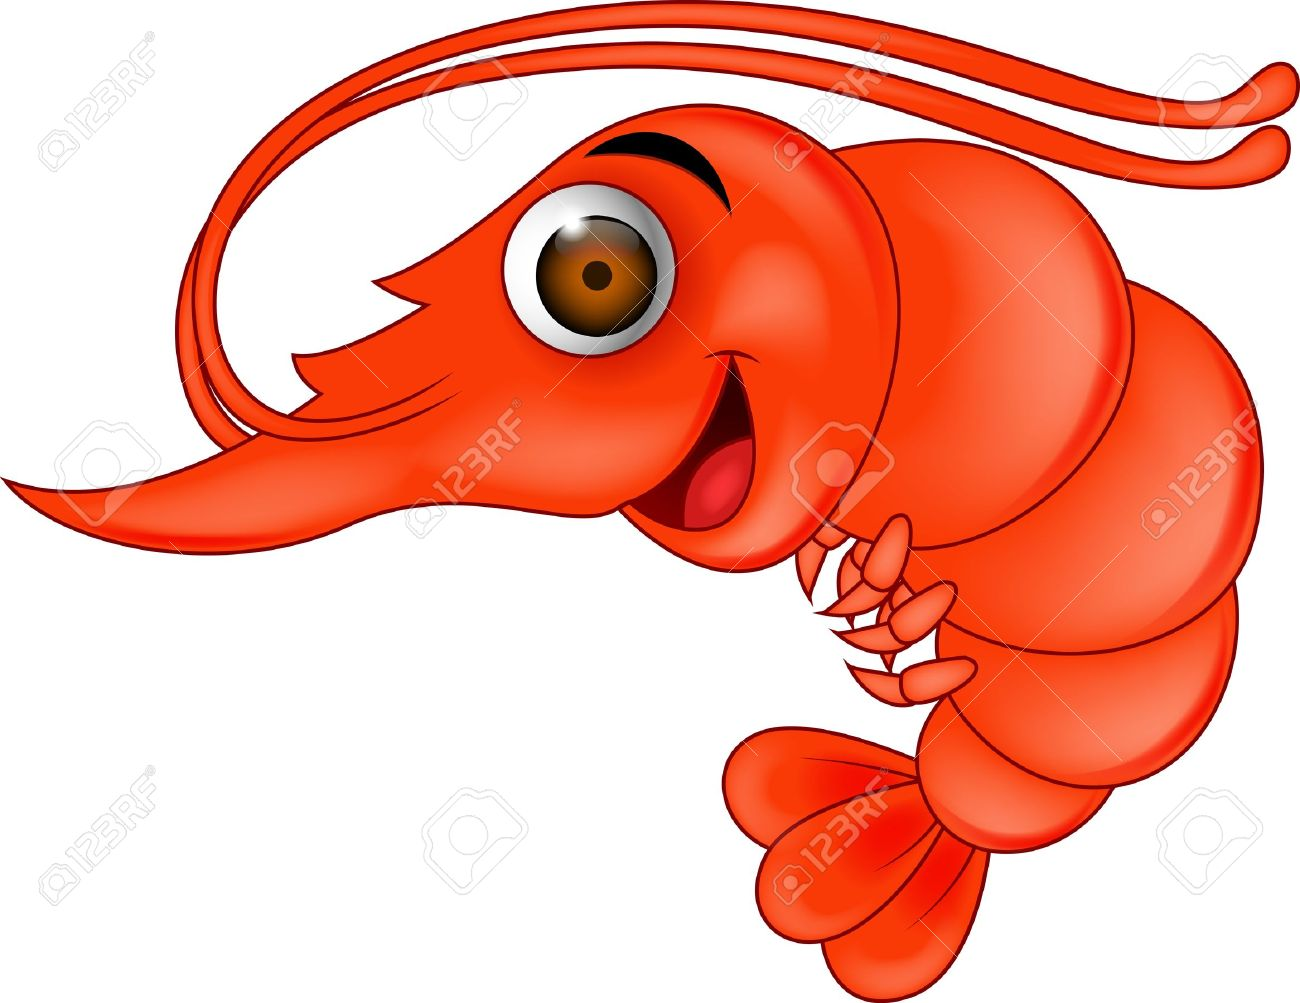 23 104 shrimp stock illustrations cliparts and royalty free shrimp rh 123rf com Cartoon Shrimp Clip Art Lobster Clip Art